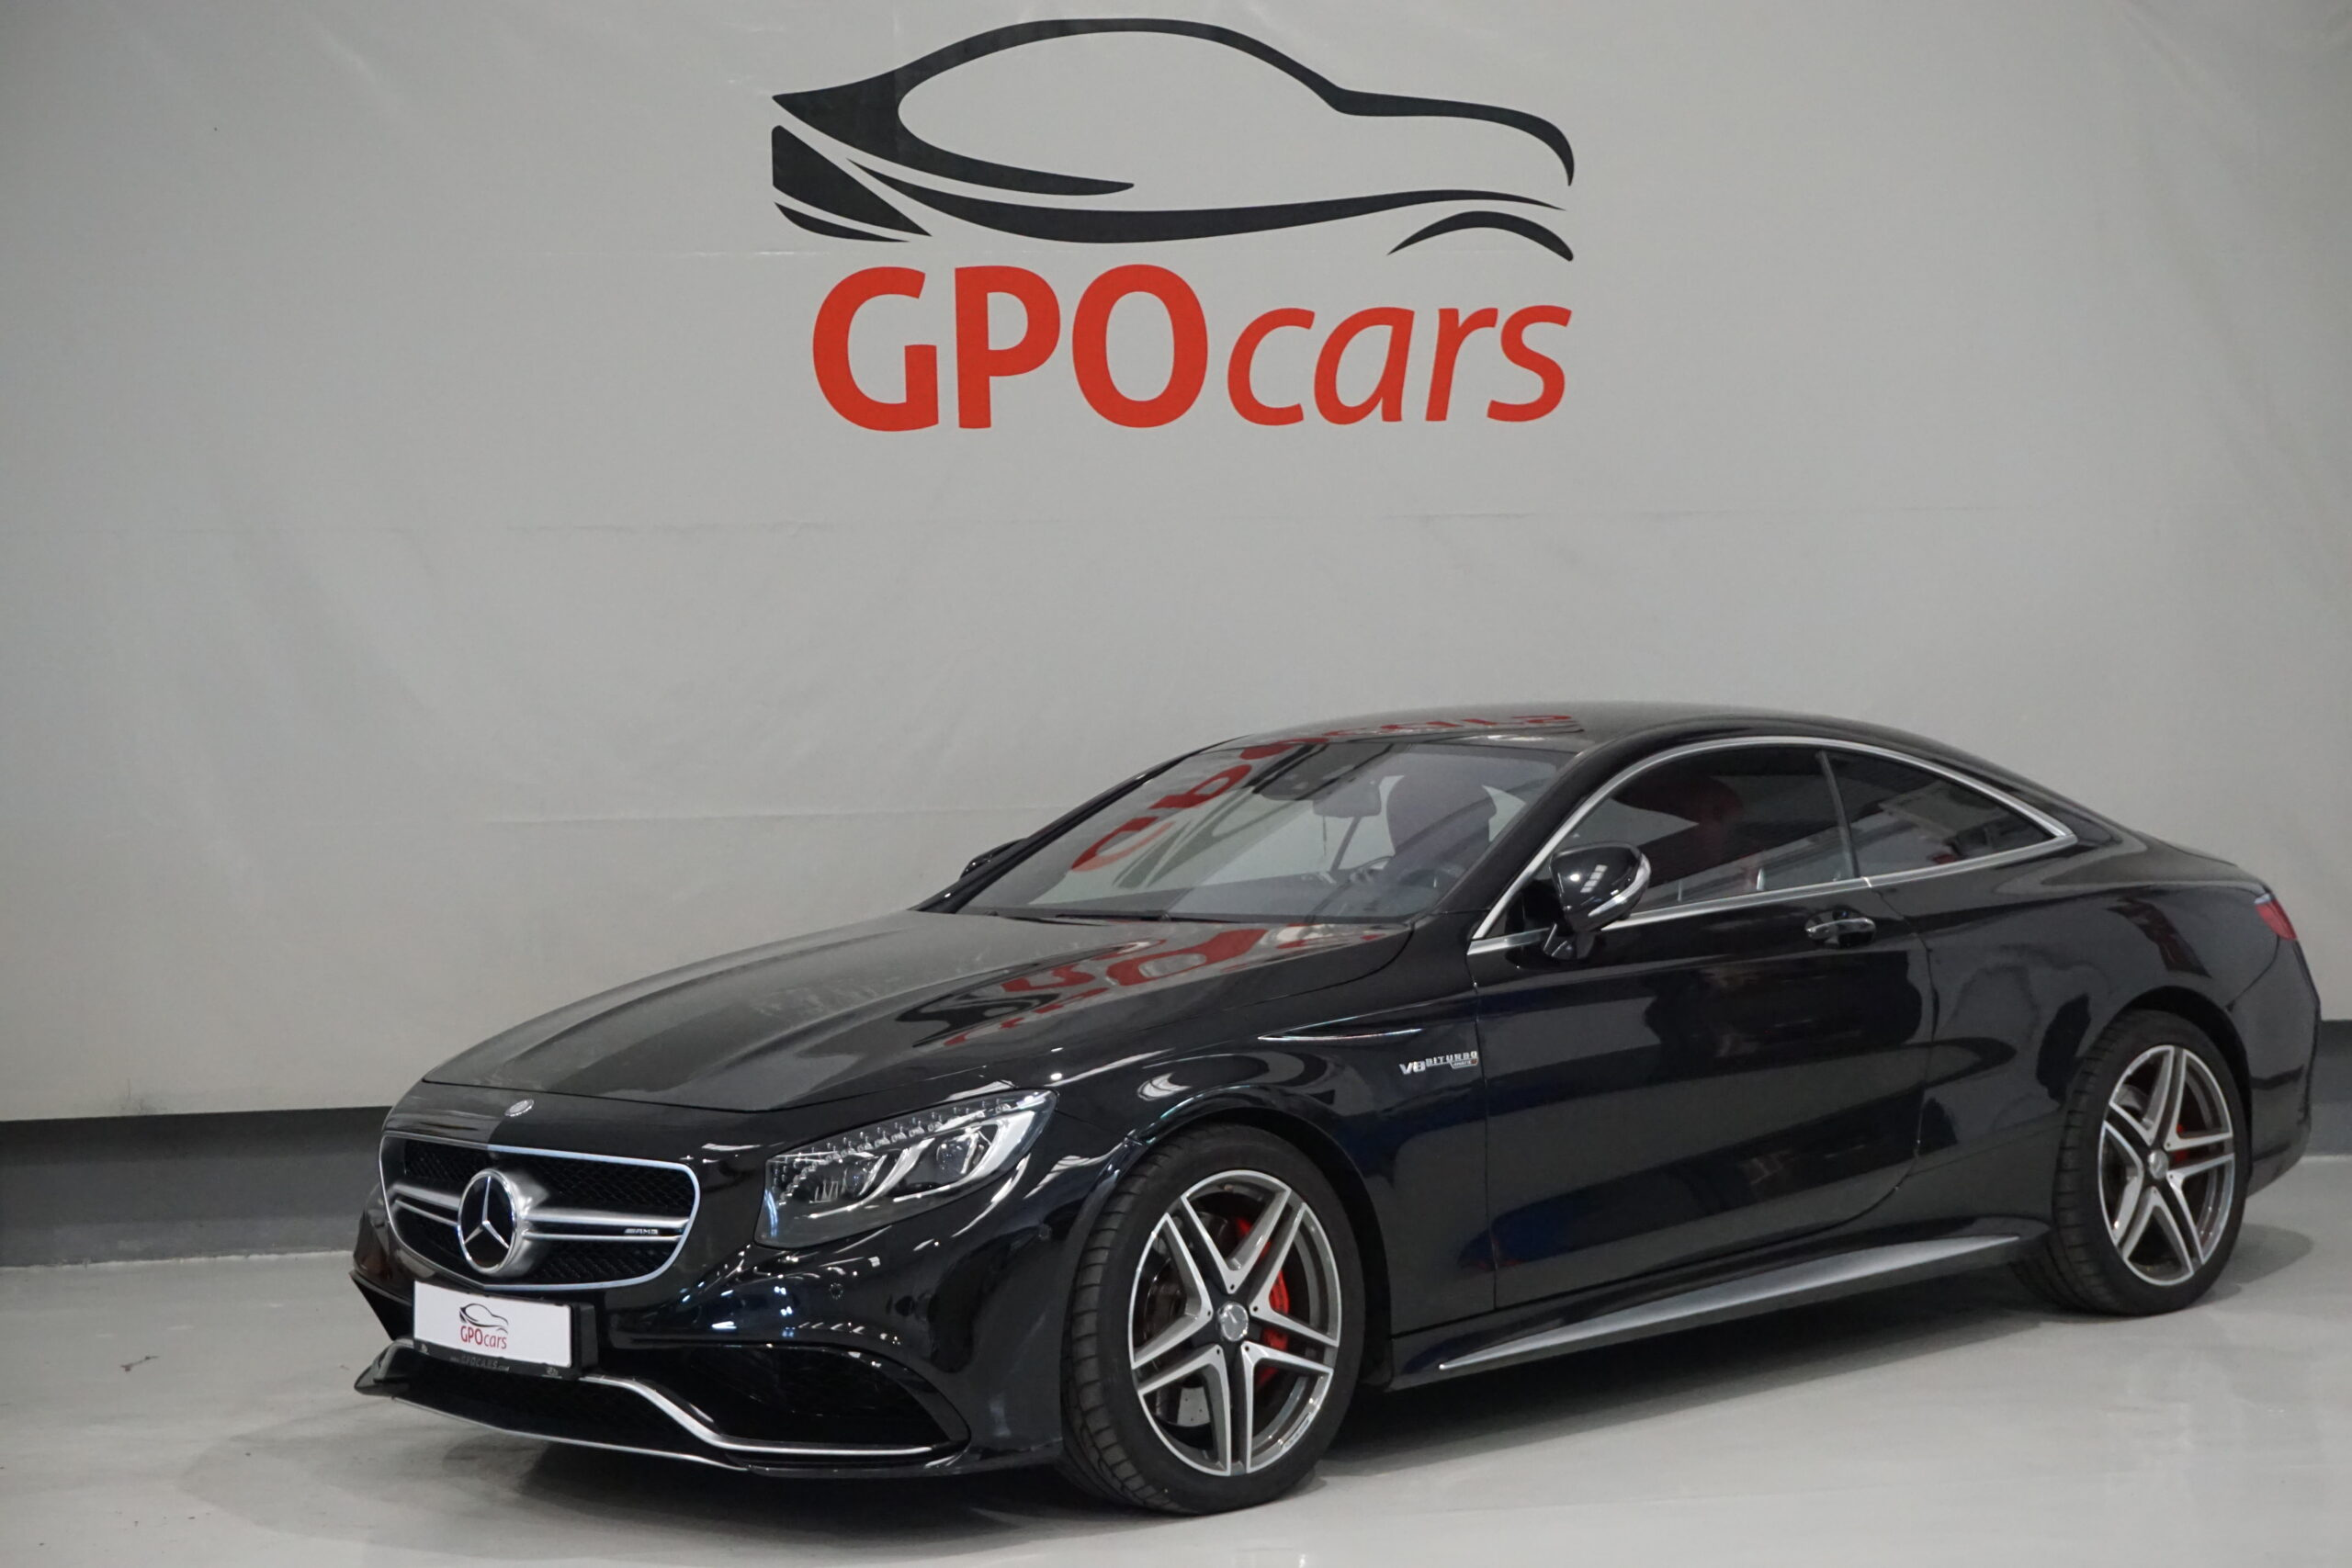 Mercedes-Benz S63 Coupe AMG V8 5.5 BiTurbo Edition 1